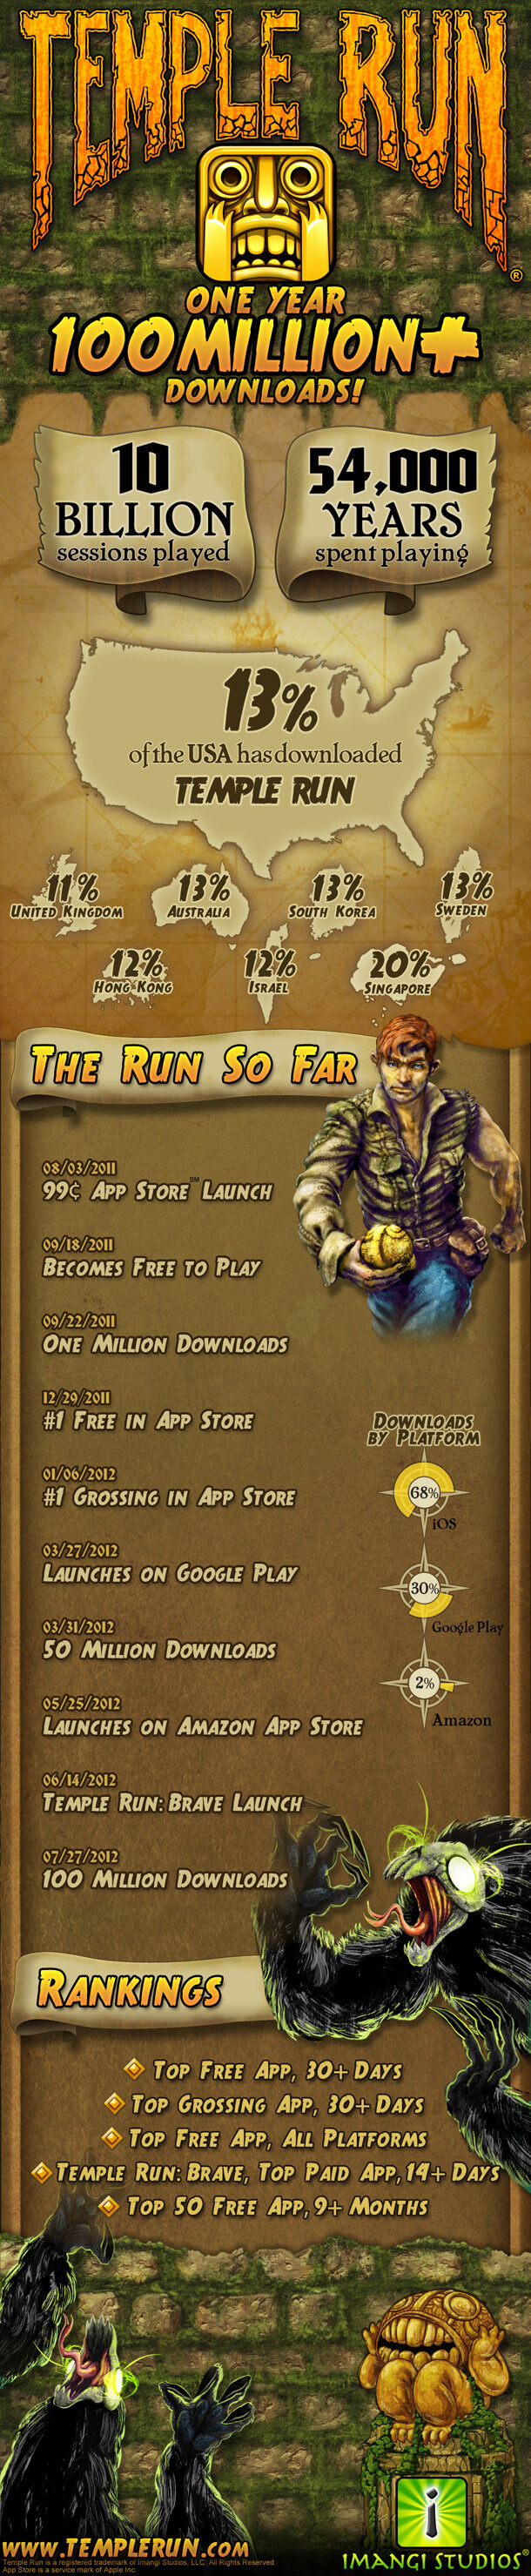 Temple Run passes 100 million downloads, celebrates with infographic